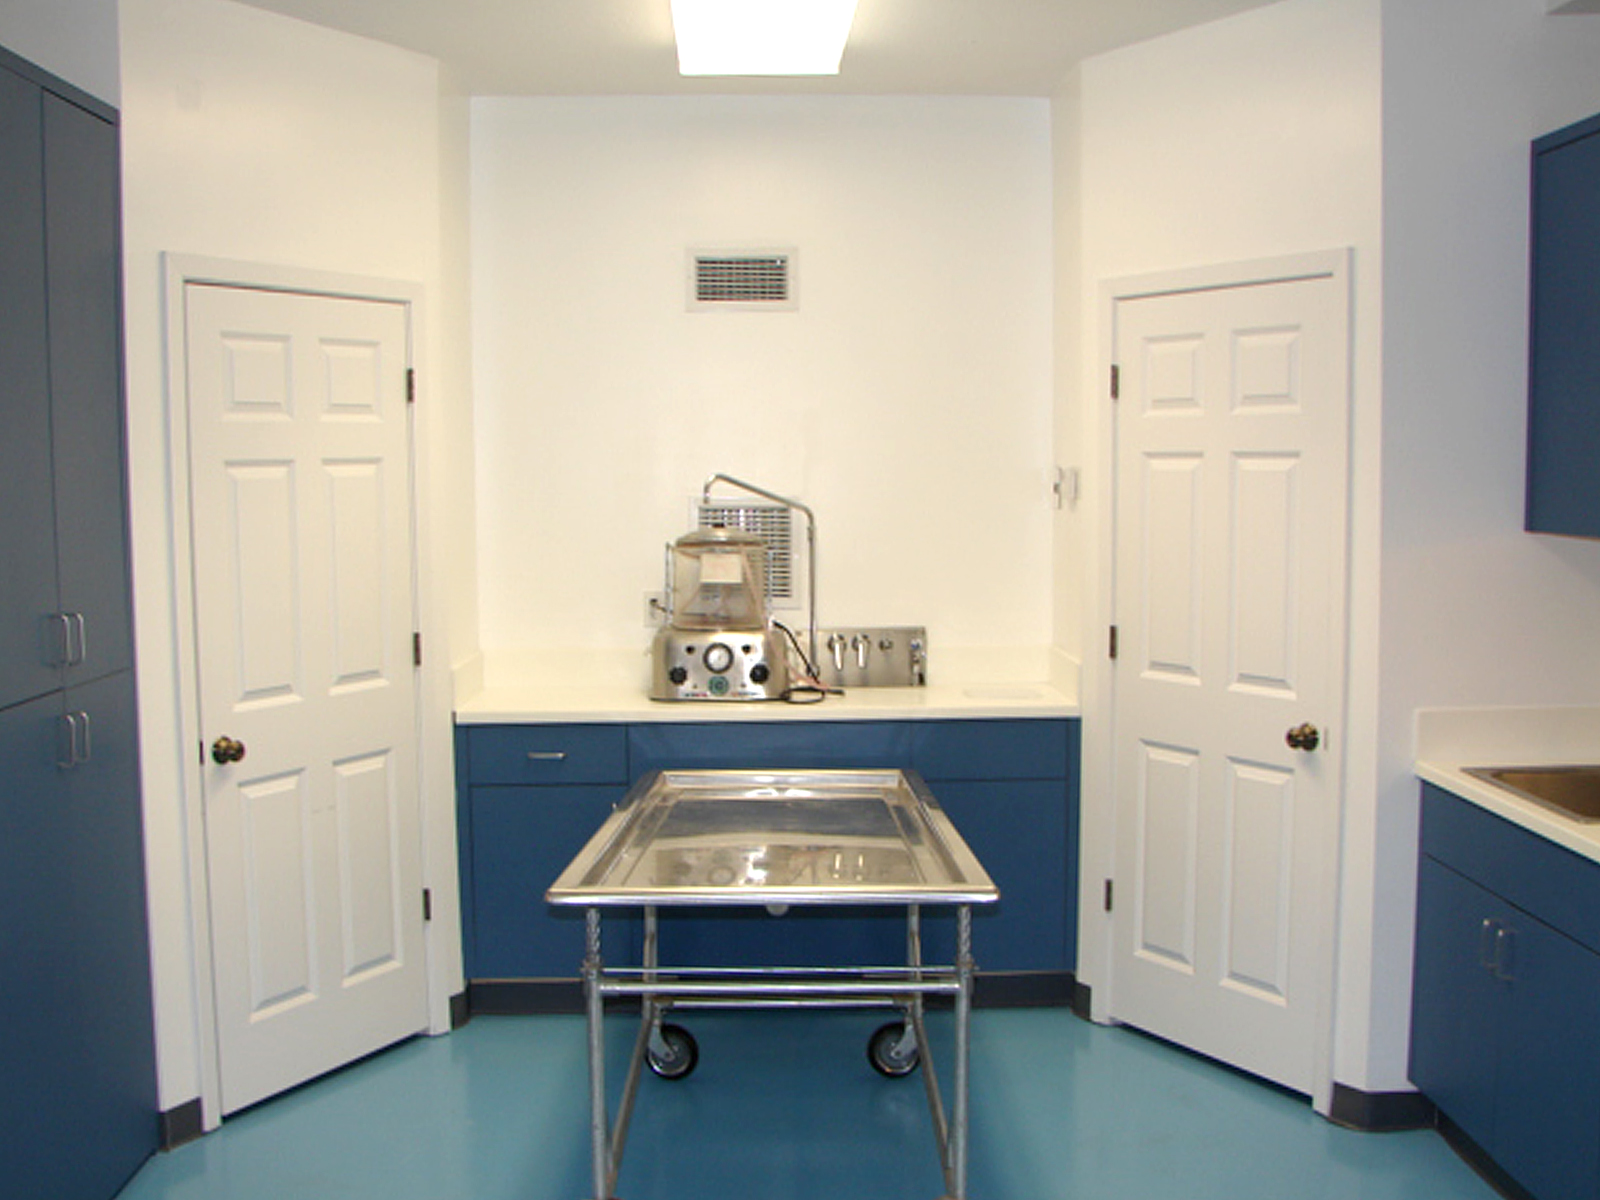 Piper funeral home Embalming room design